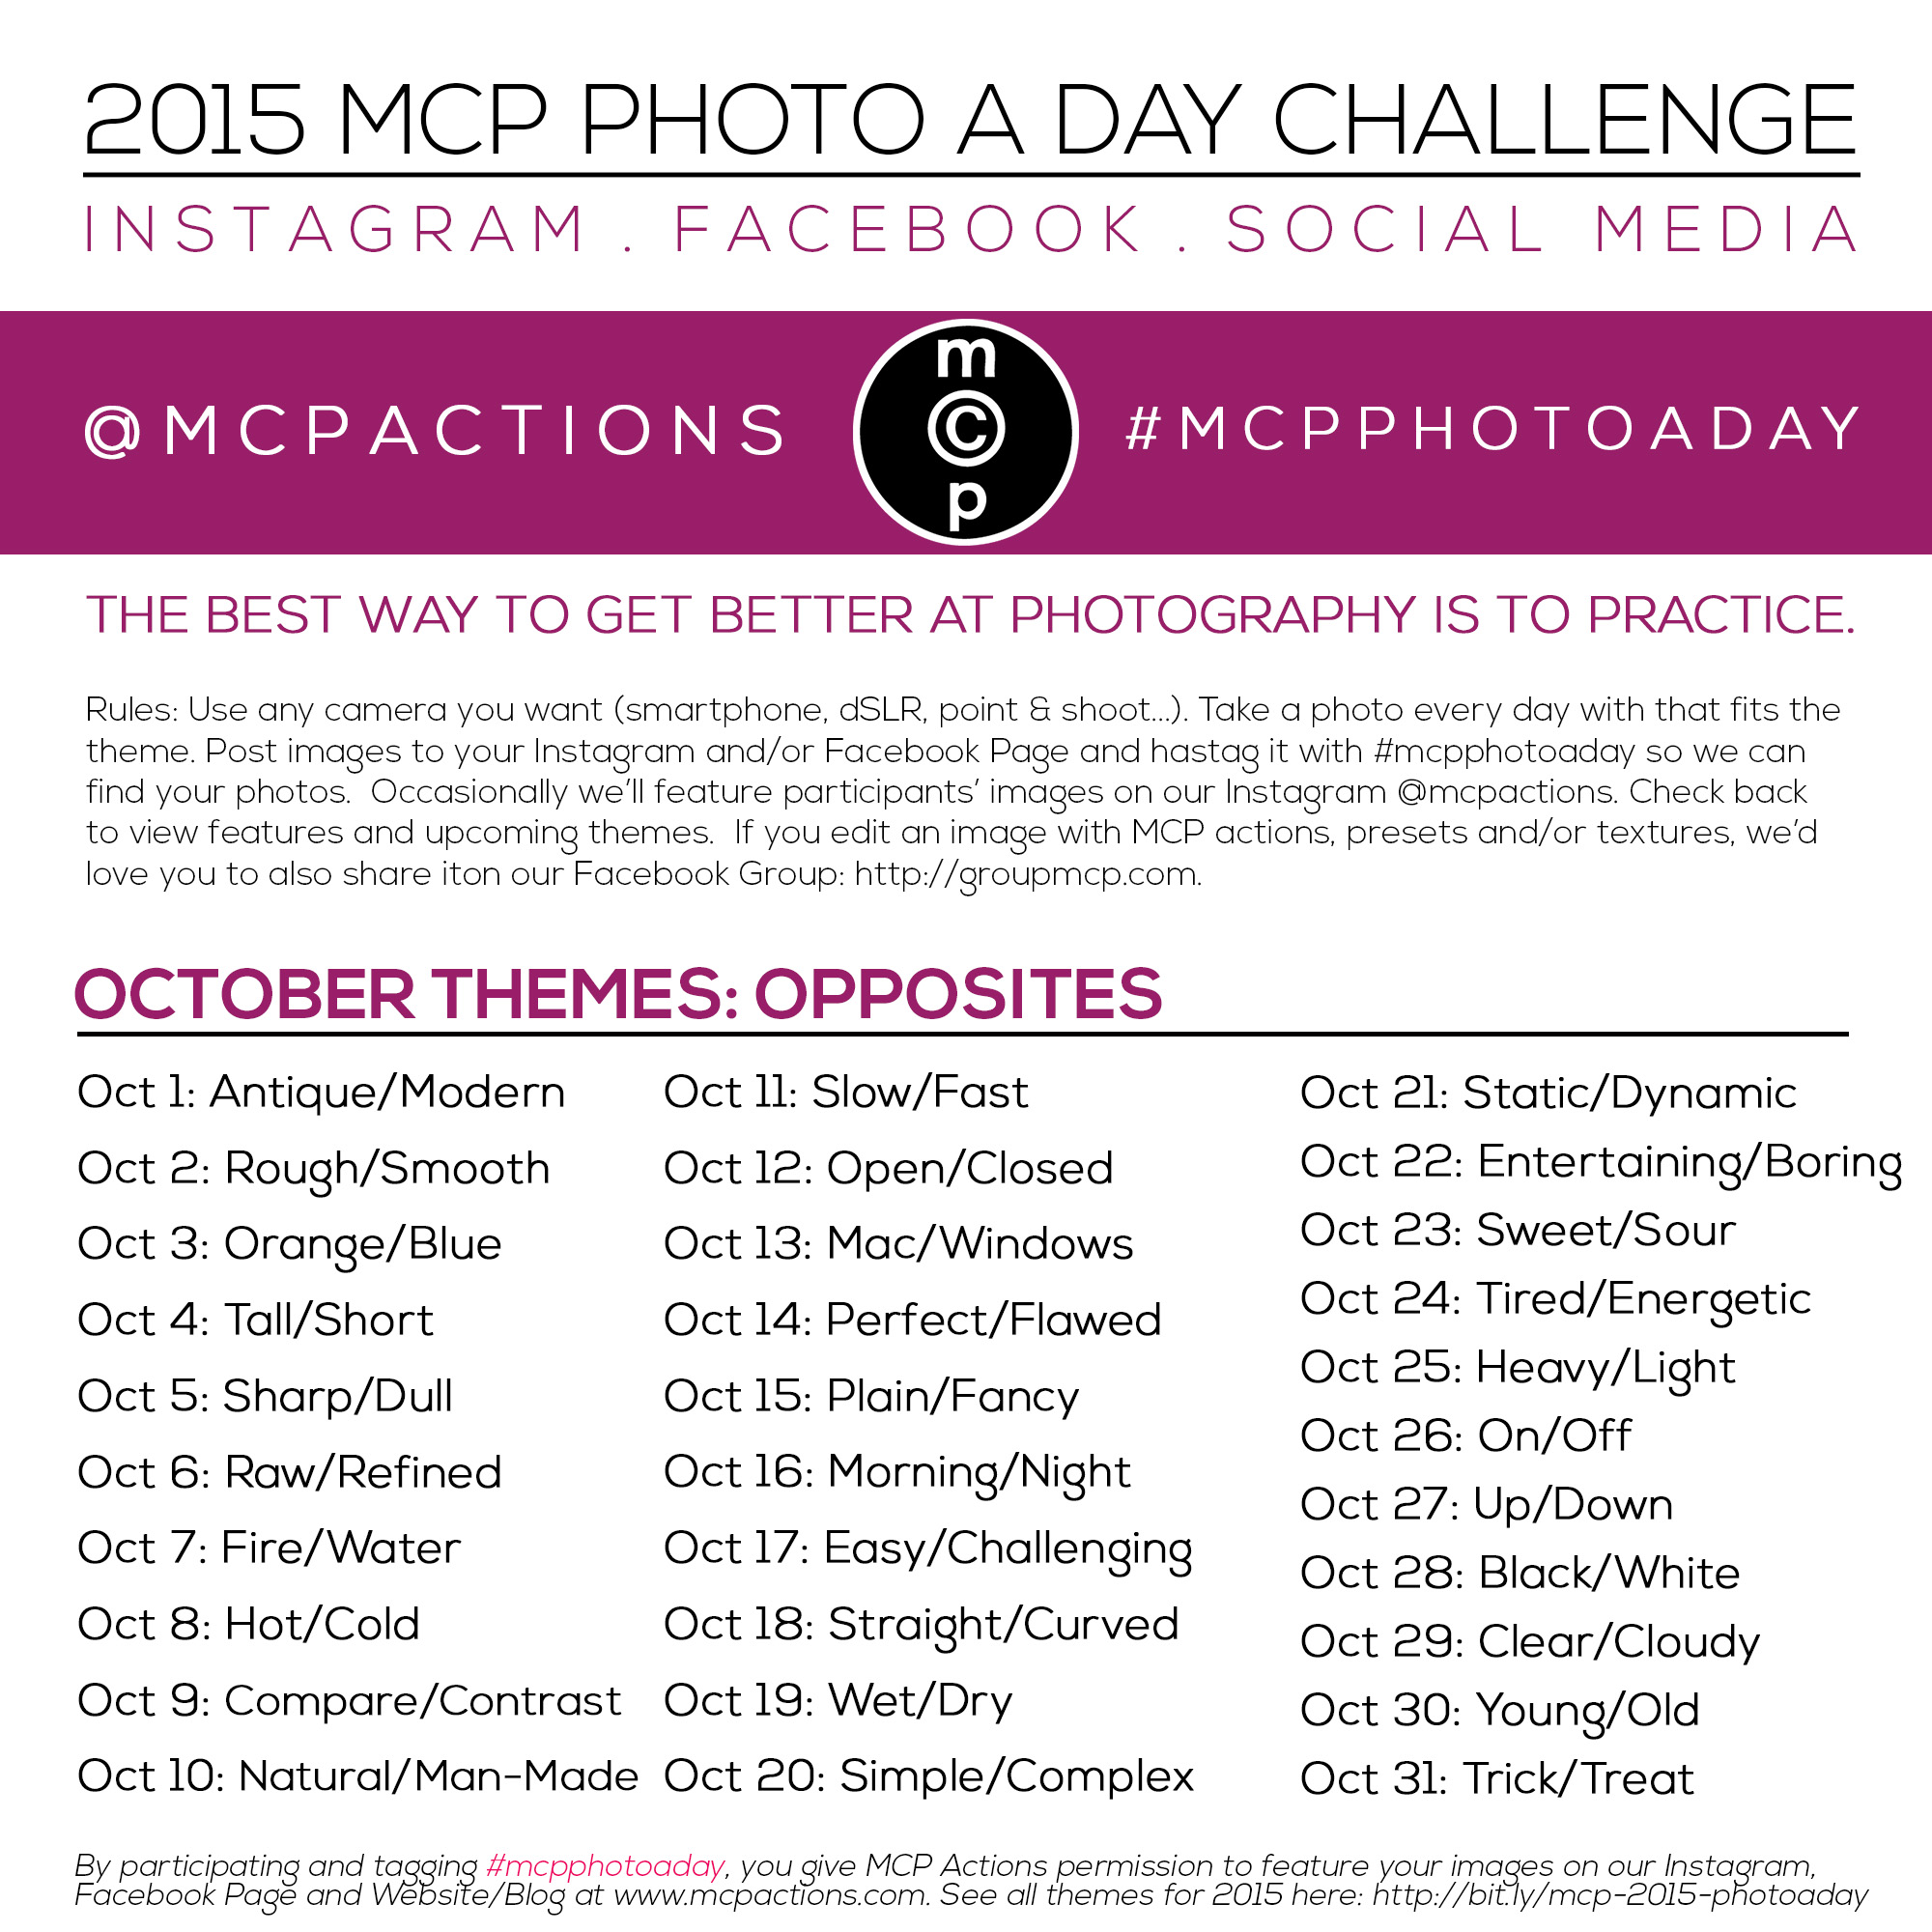 mcpphotoaday-october1 MCP Photo A Day Challenge: October 2015 Themes Activities Announcements Assignments